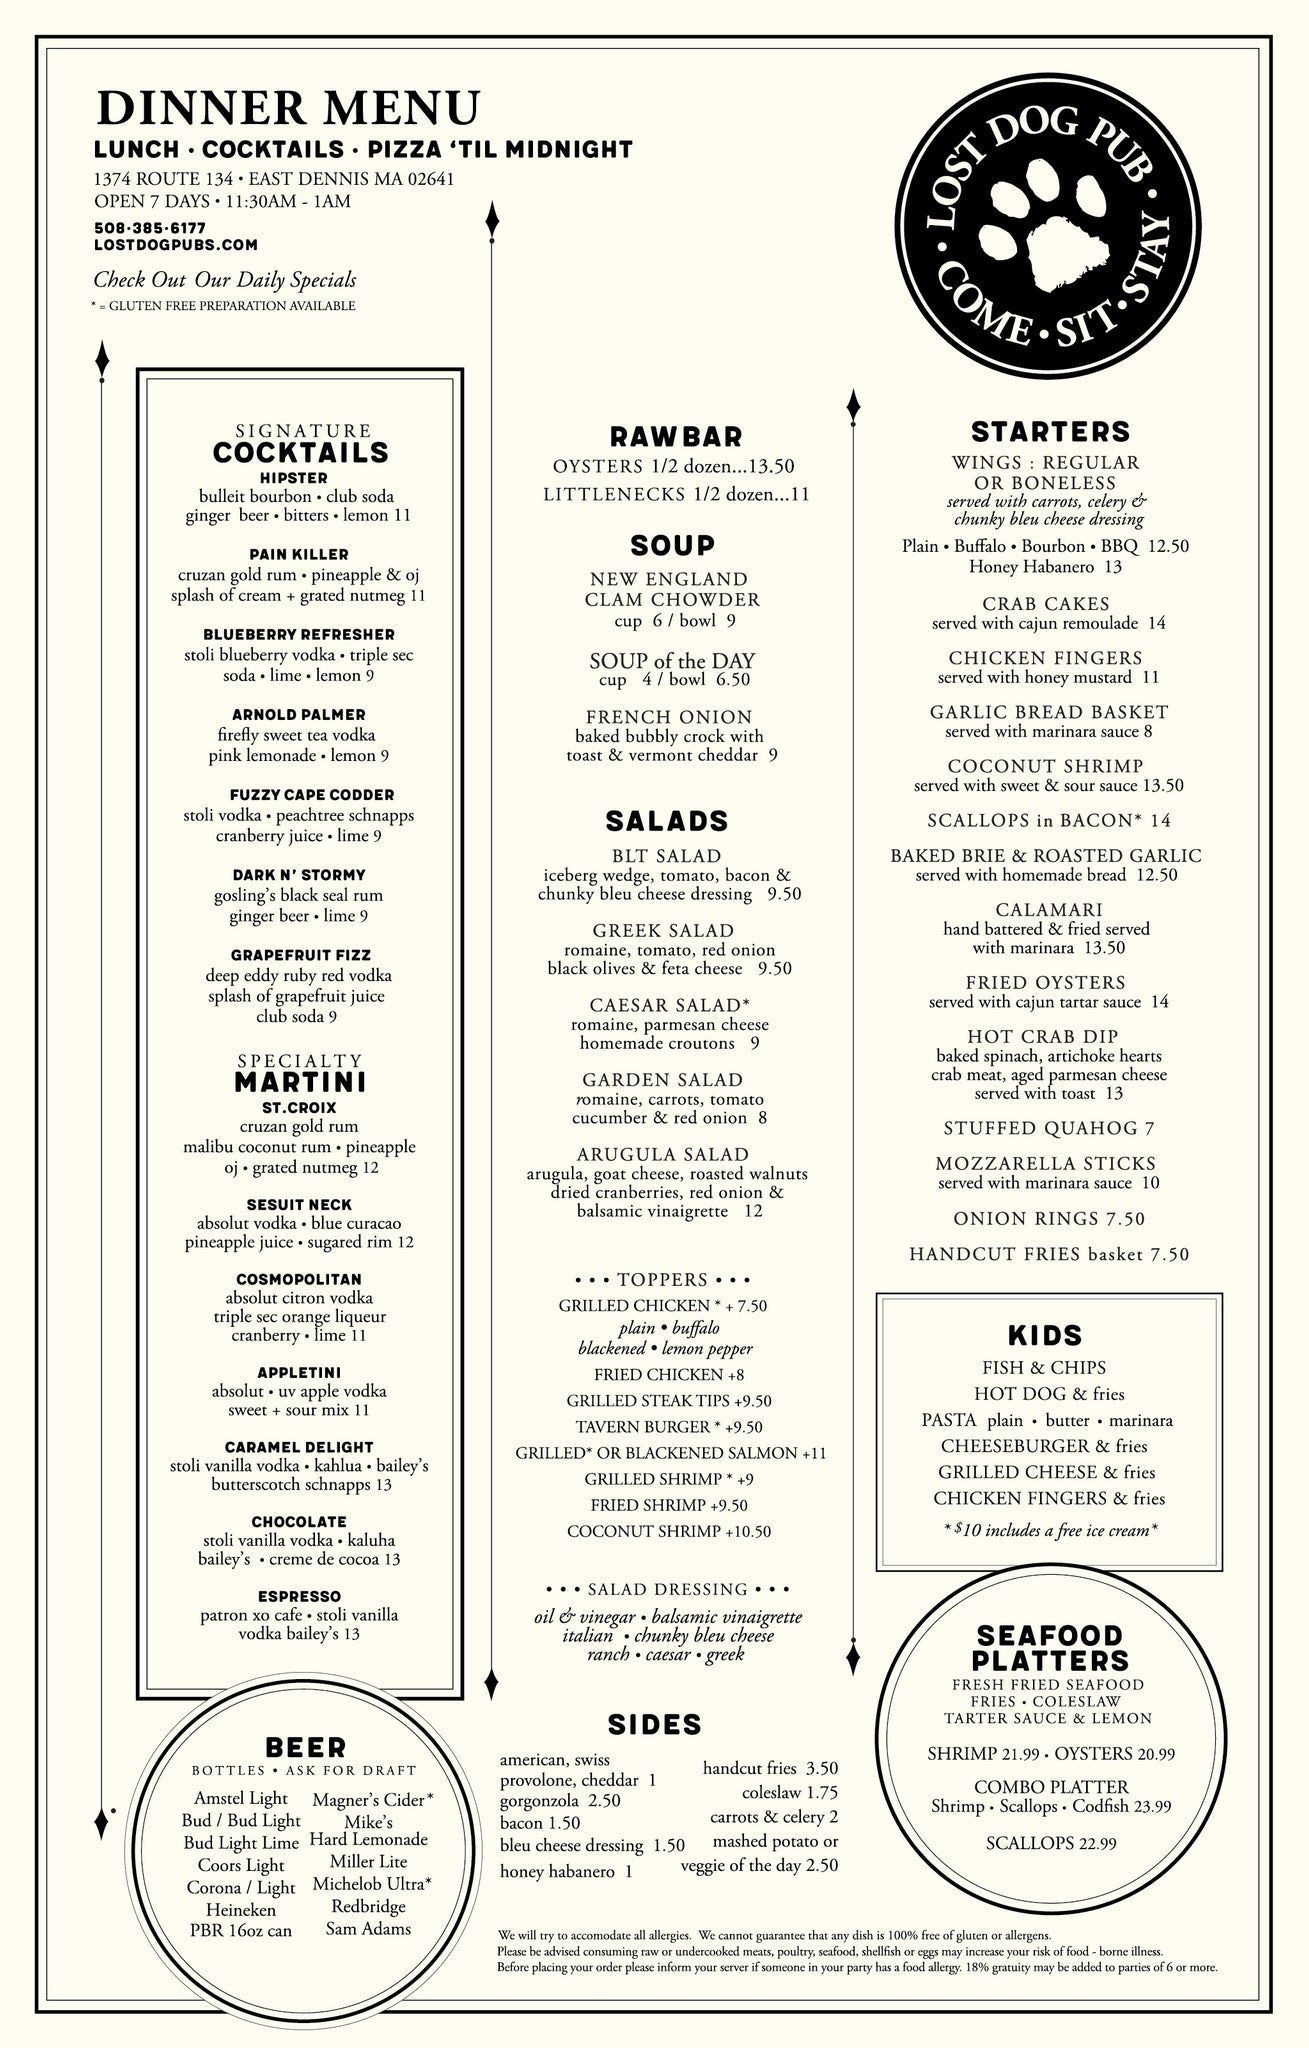 LDP DENNIS MENU – LOST DOG PUB